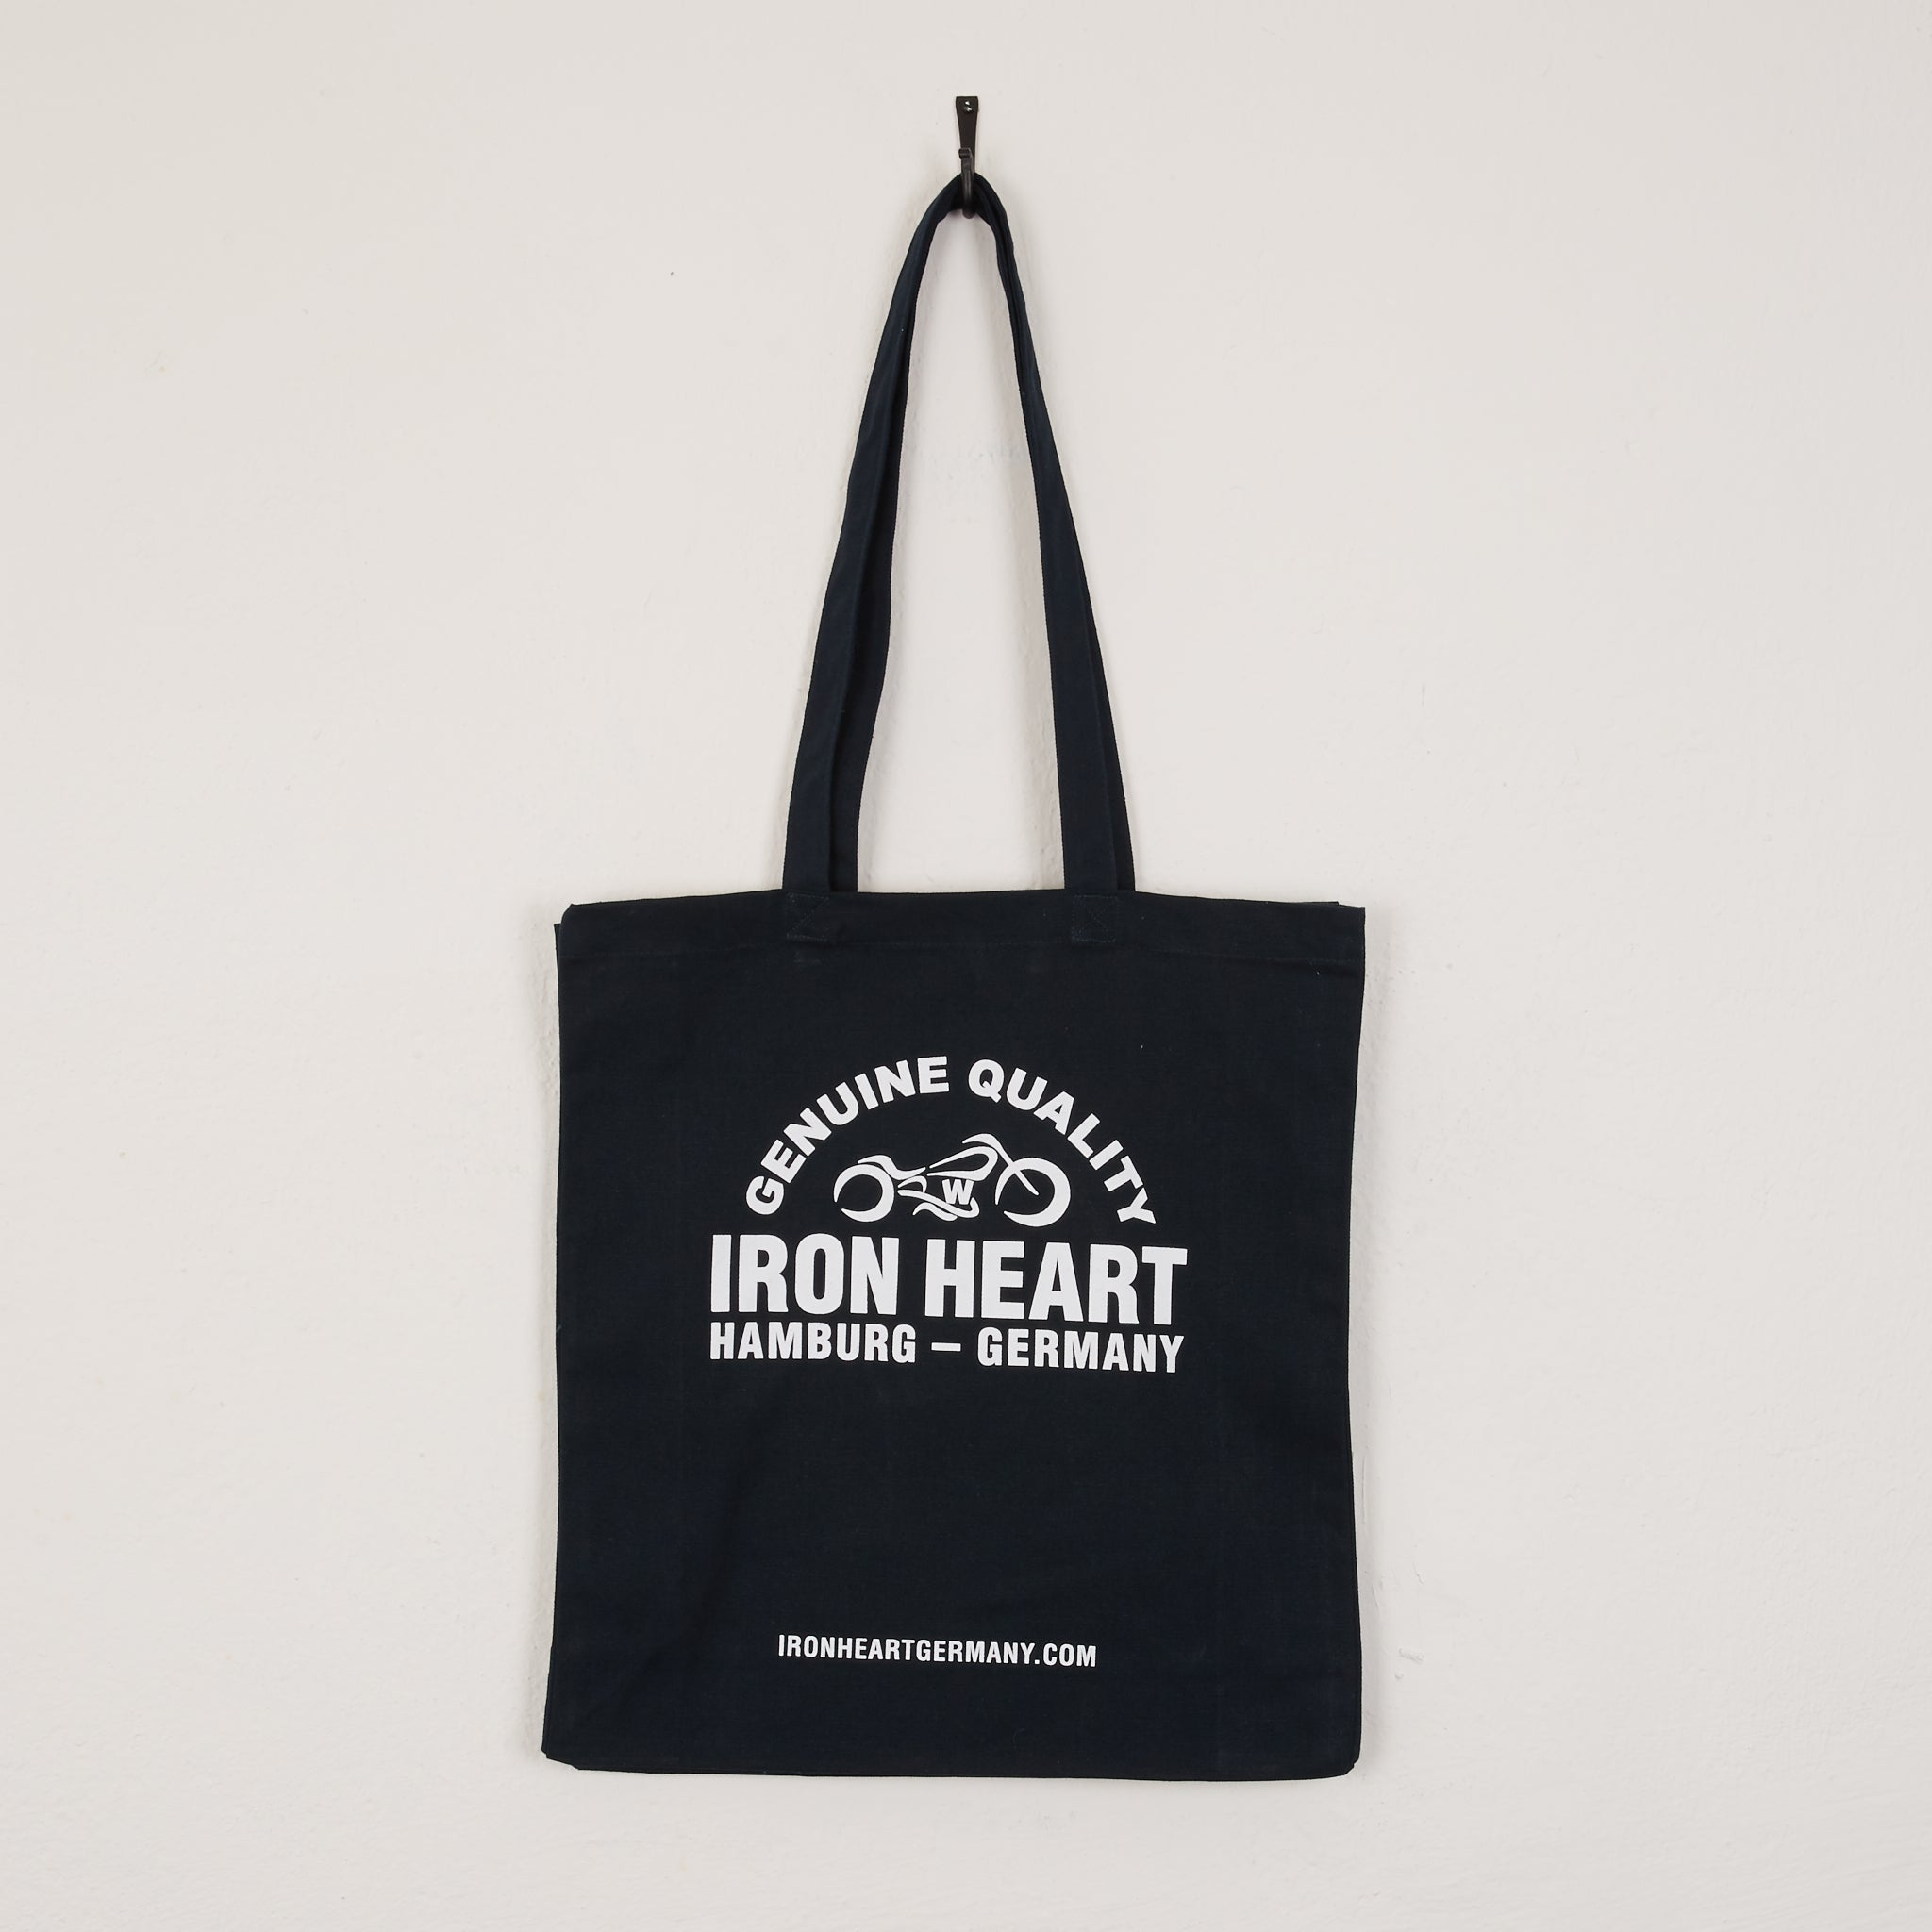 Iron Heart Hamburg Tote Bag